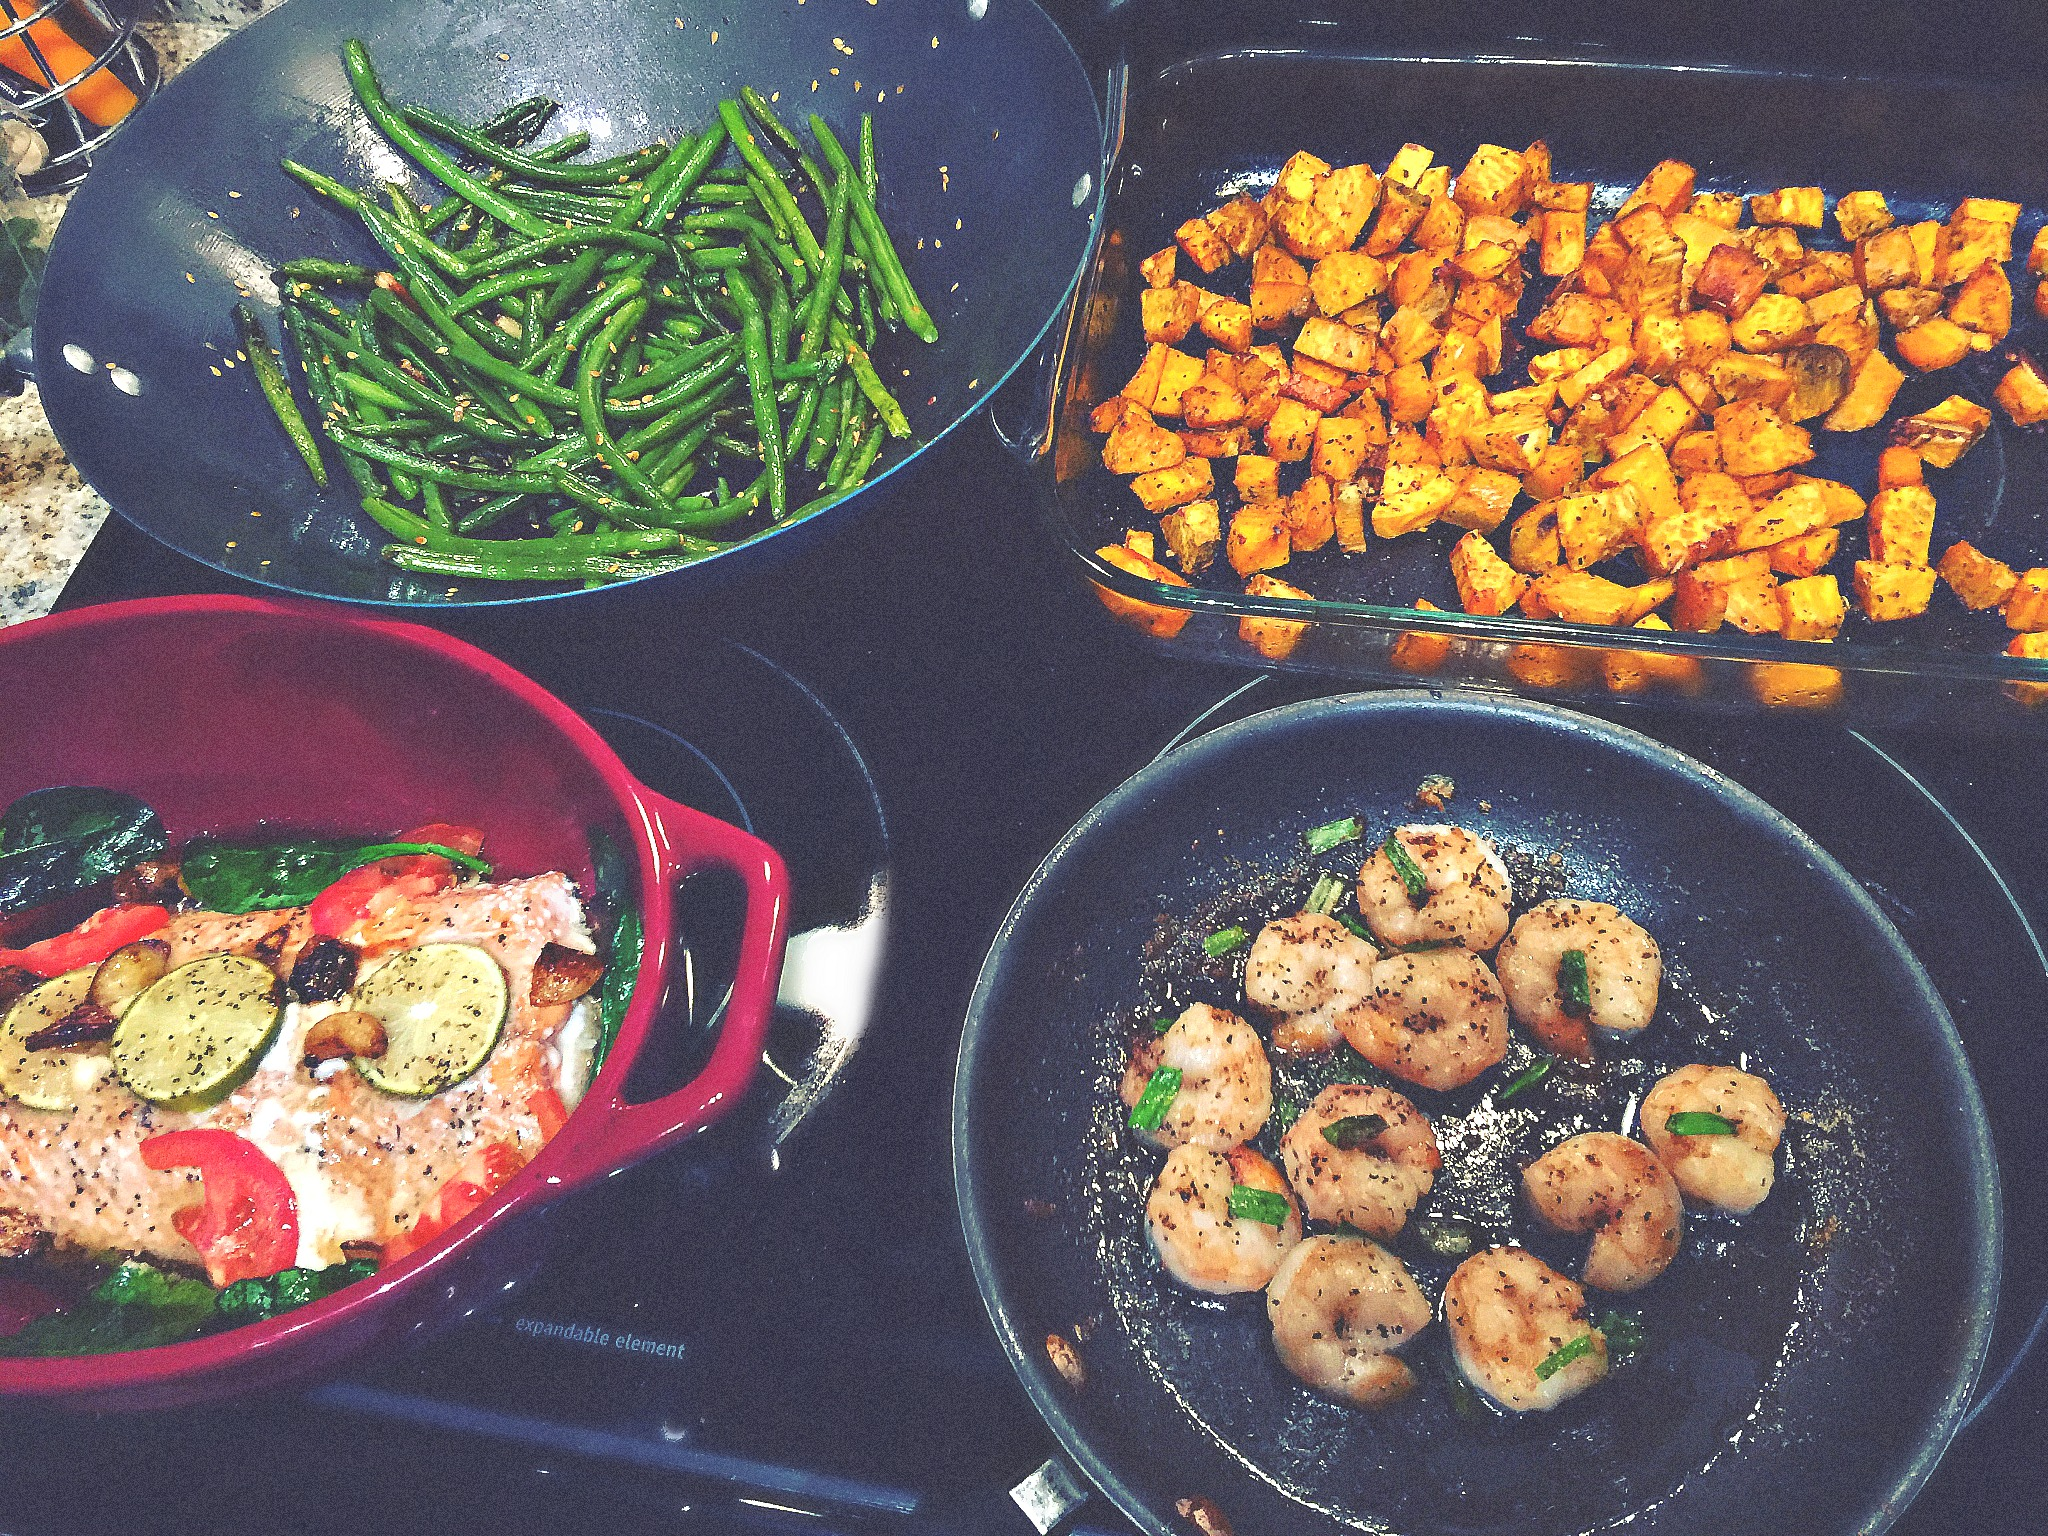 Friday Night Dinner: Salmon, Sweet Potatoes, Shrimp & Green Beans